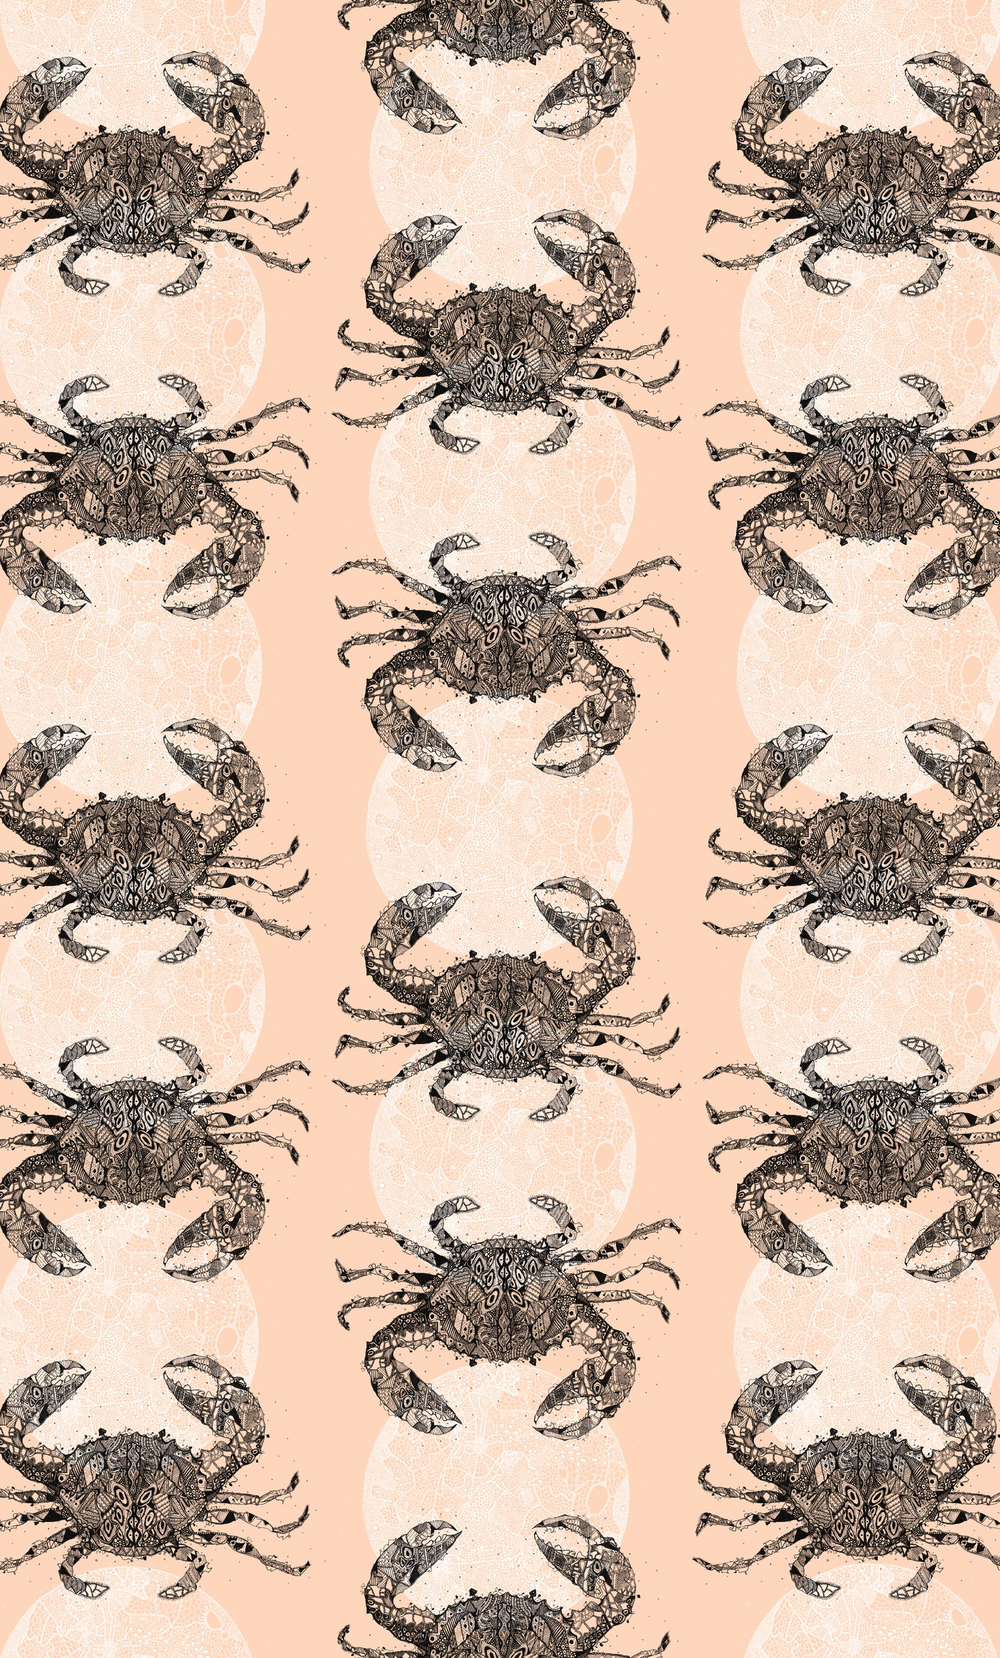 crab_wallpaper_pinkwhiteblack.jpg